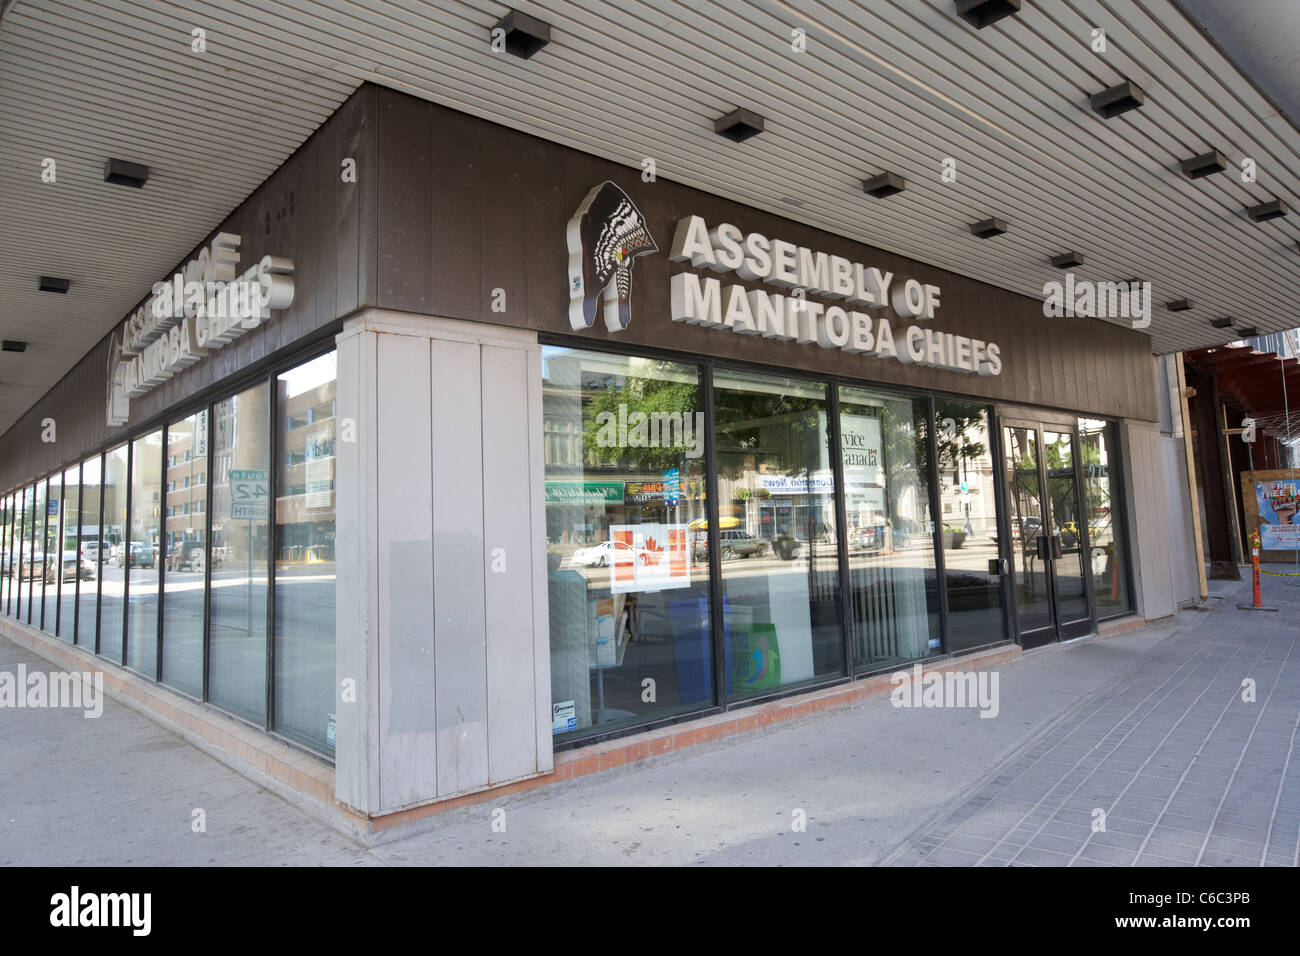 assembly of manitoba chiefs office downtown winnipeg manitoba canada - Stock Image